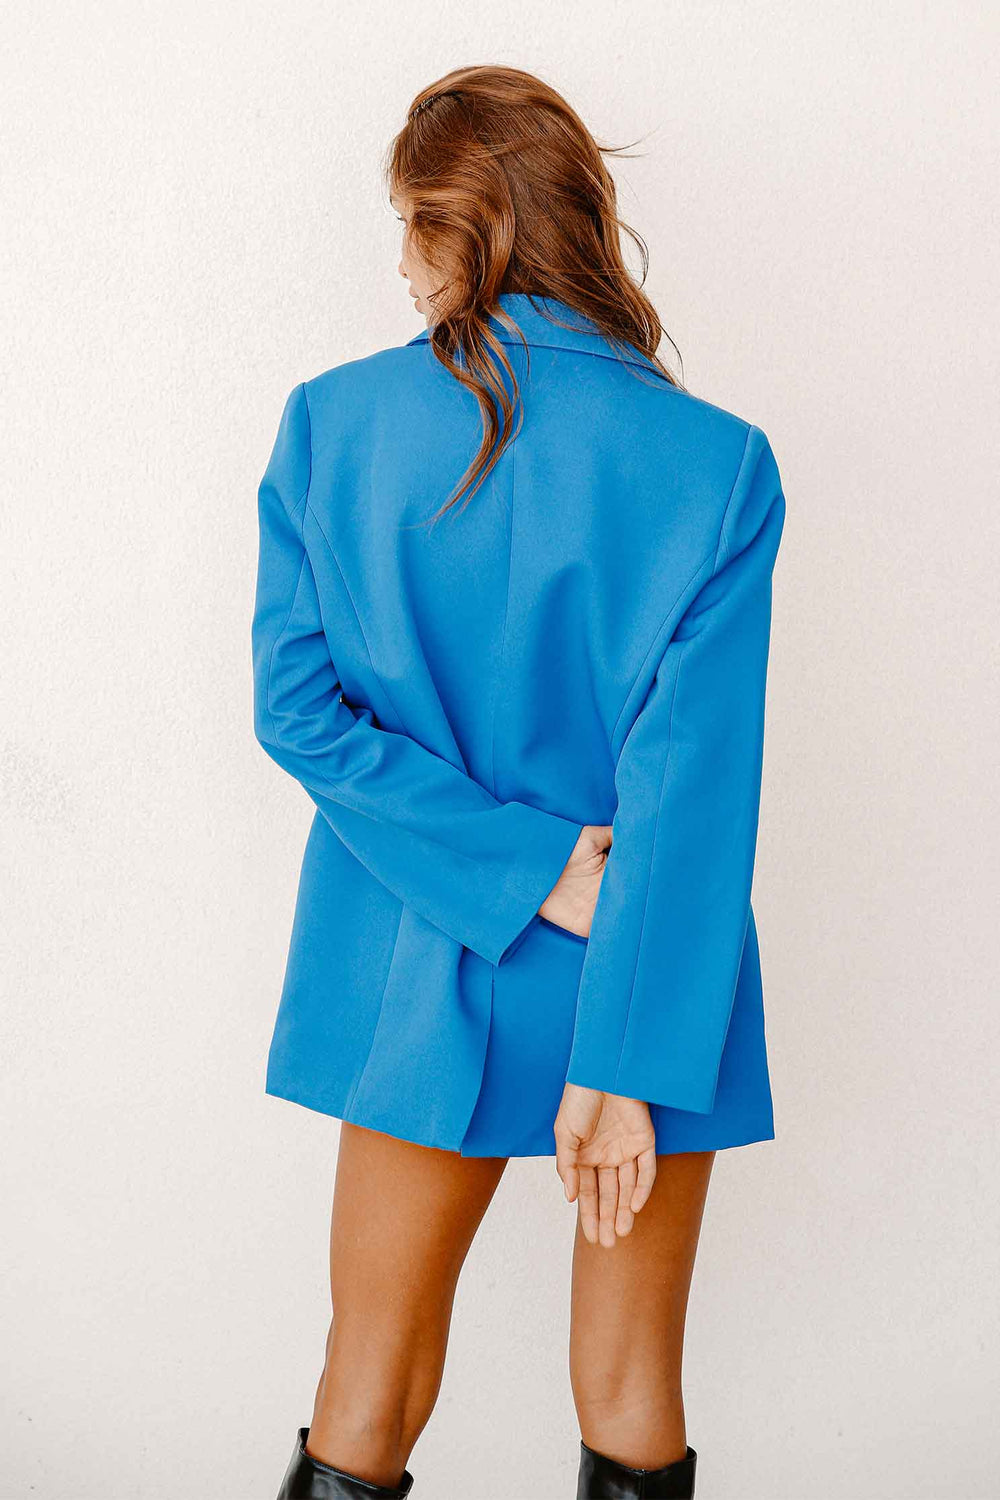 WYOMING BLAZER - COBALT BLUE (4733470998617)